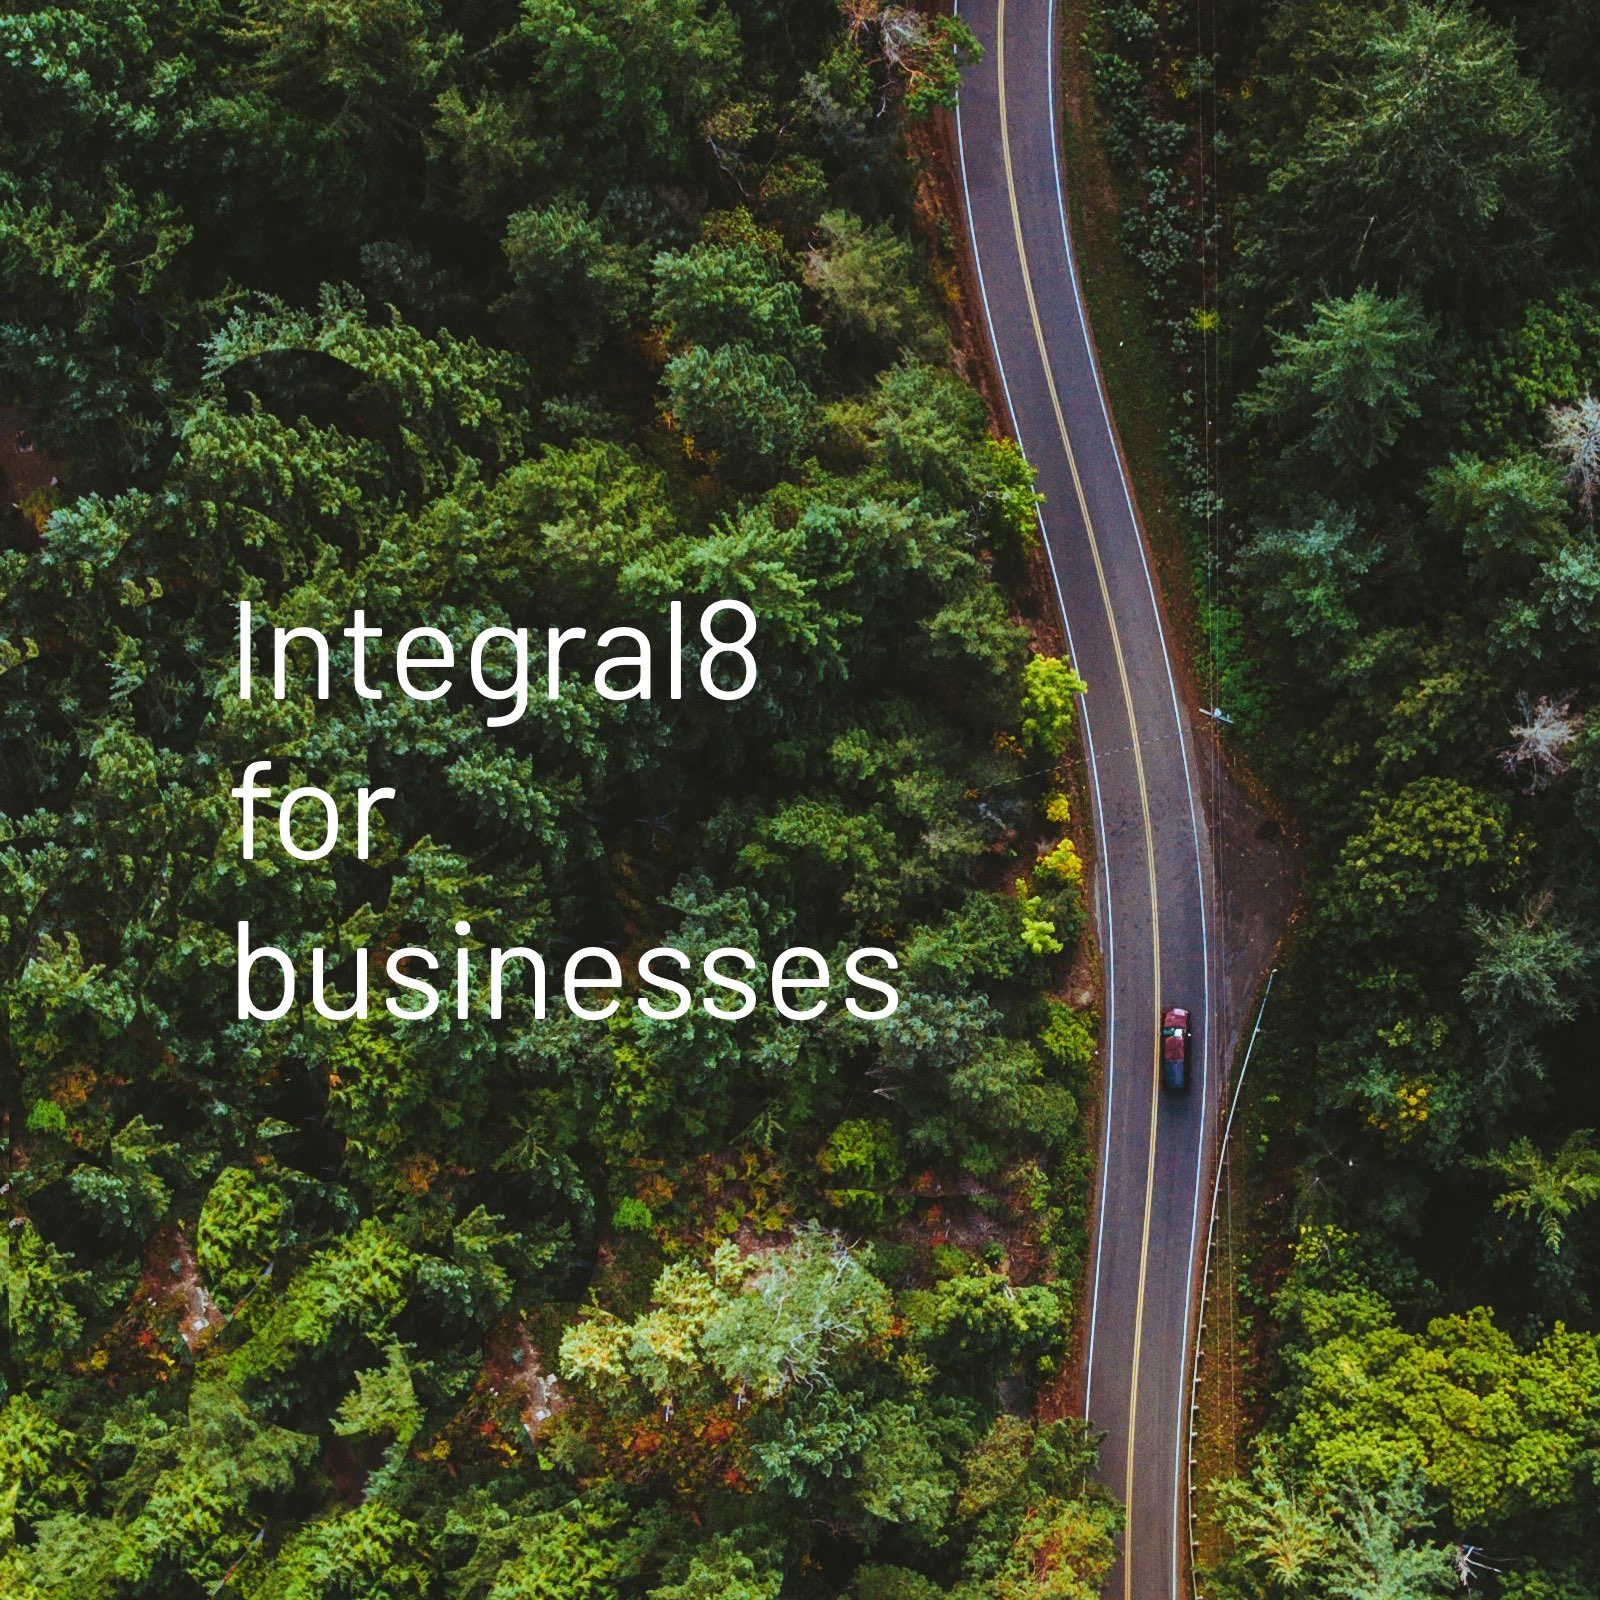 - Integral8 develops leaders to find novel answers to complex problems, to become more authentic and considerate of alternative perspectives and to build stronger relationships. That has to be good for the long-term performance and wellbeing of your workplace and your employees.